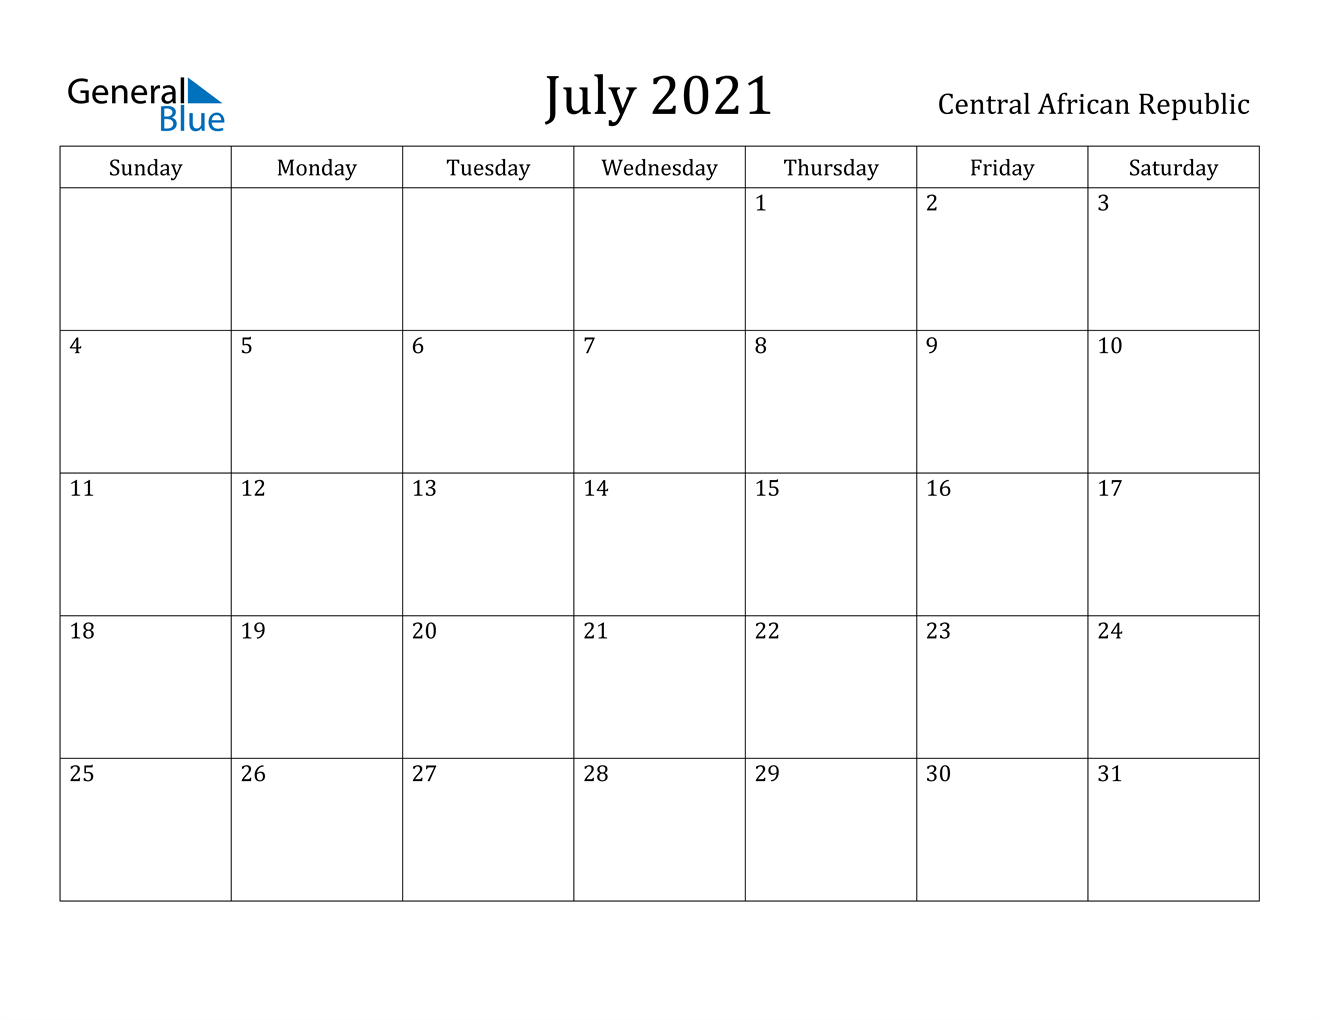 July 2021 Calendar - Central African Republic